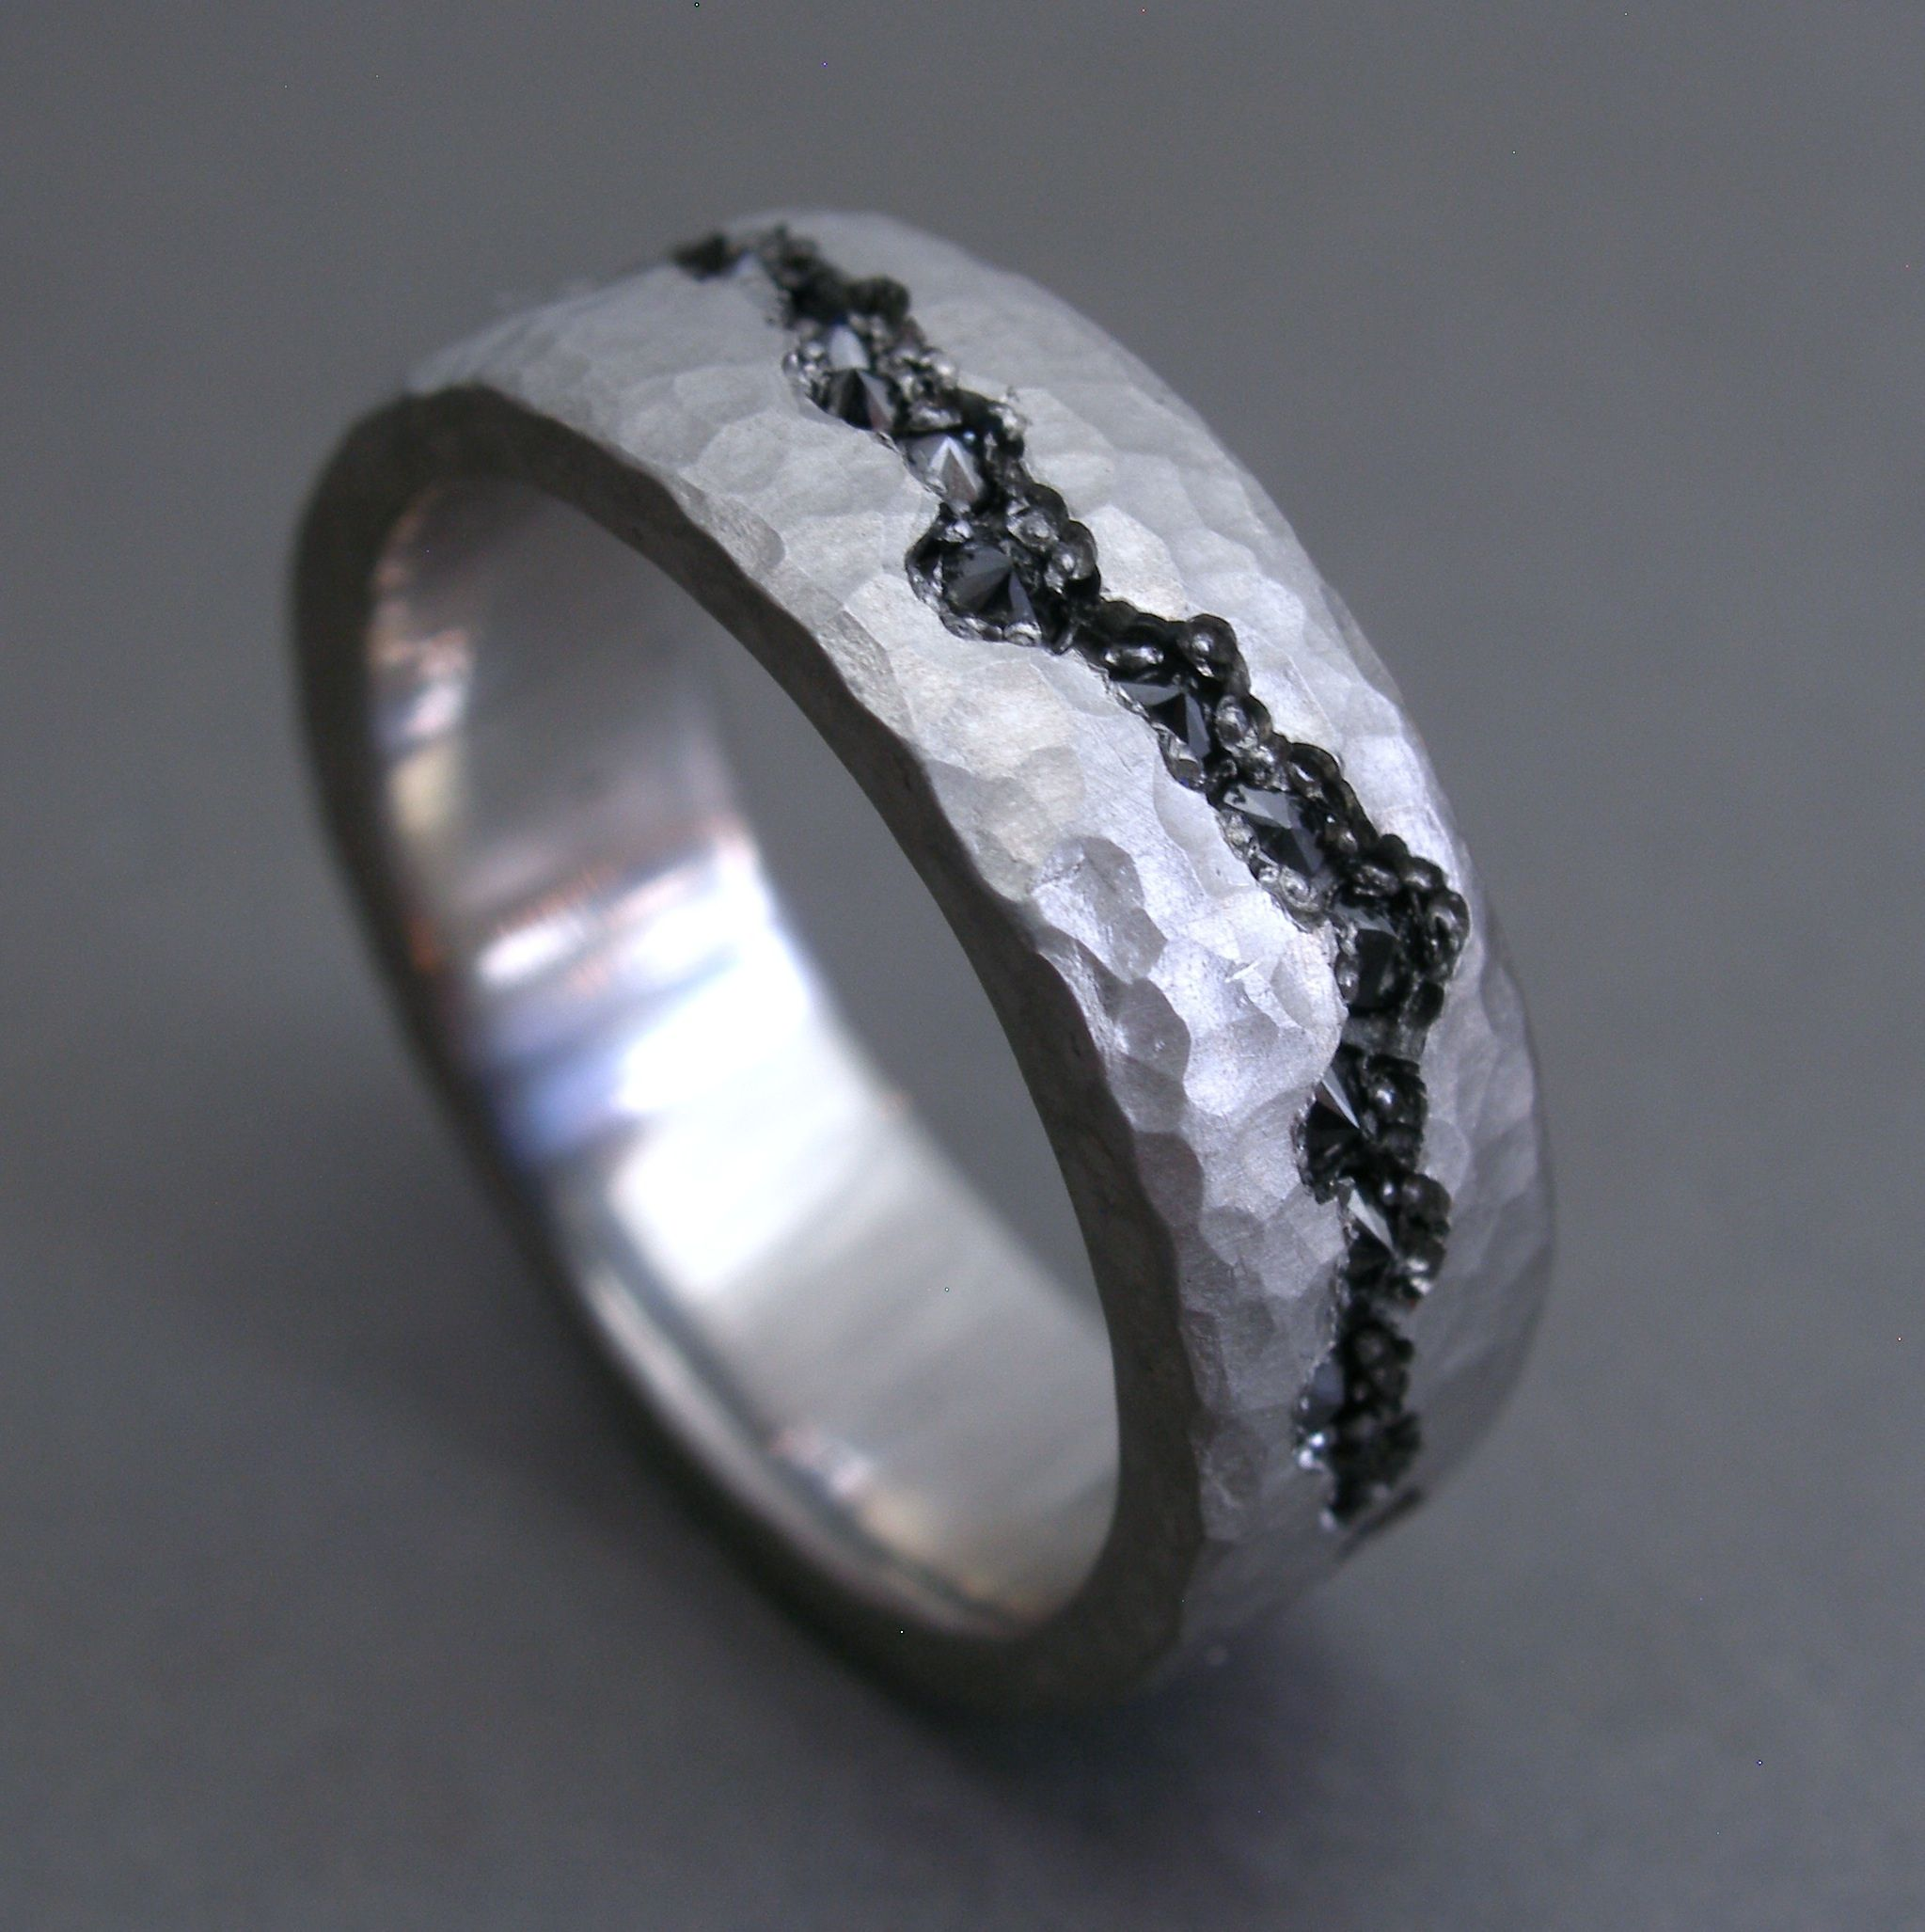 This Is The Ring! Yay! TAP BY TODD POWNELL